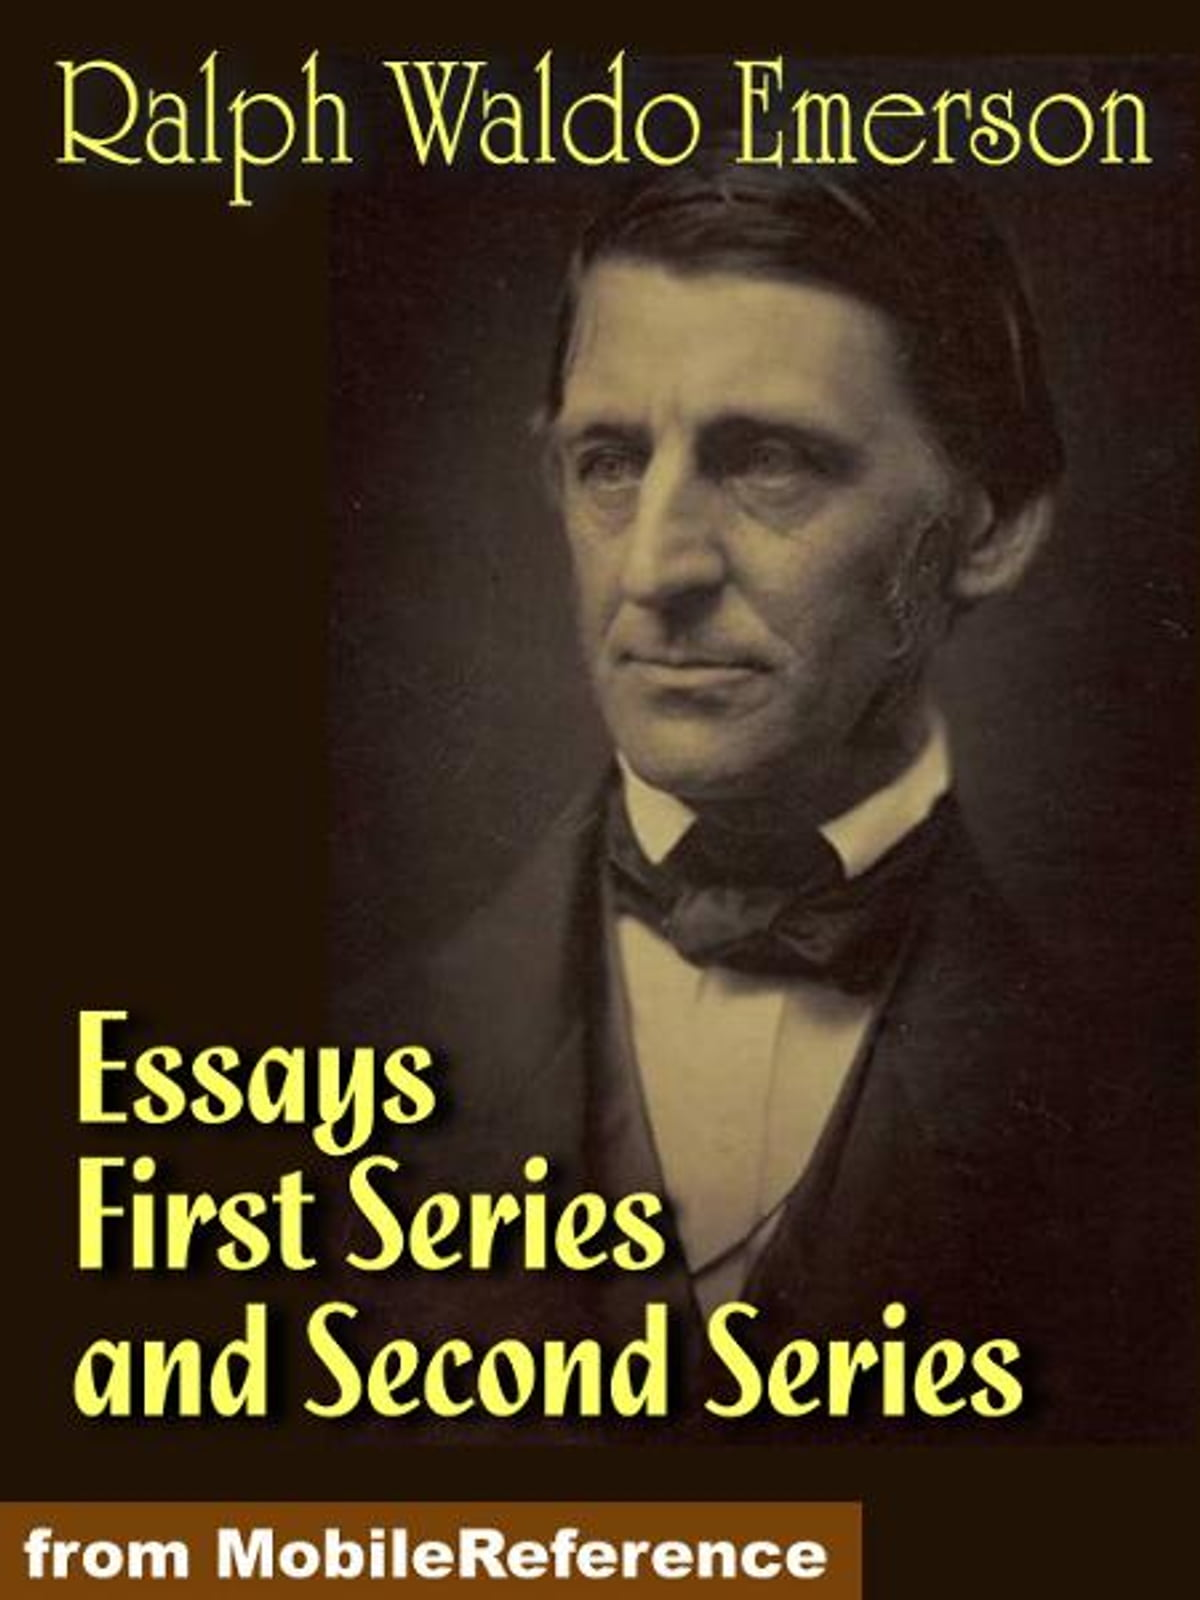 emmerson essays Essay on art - emerson, listen to free sample of emersons essay on art and then join our members for full access to all the great spiritual and self help.